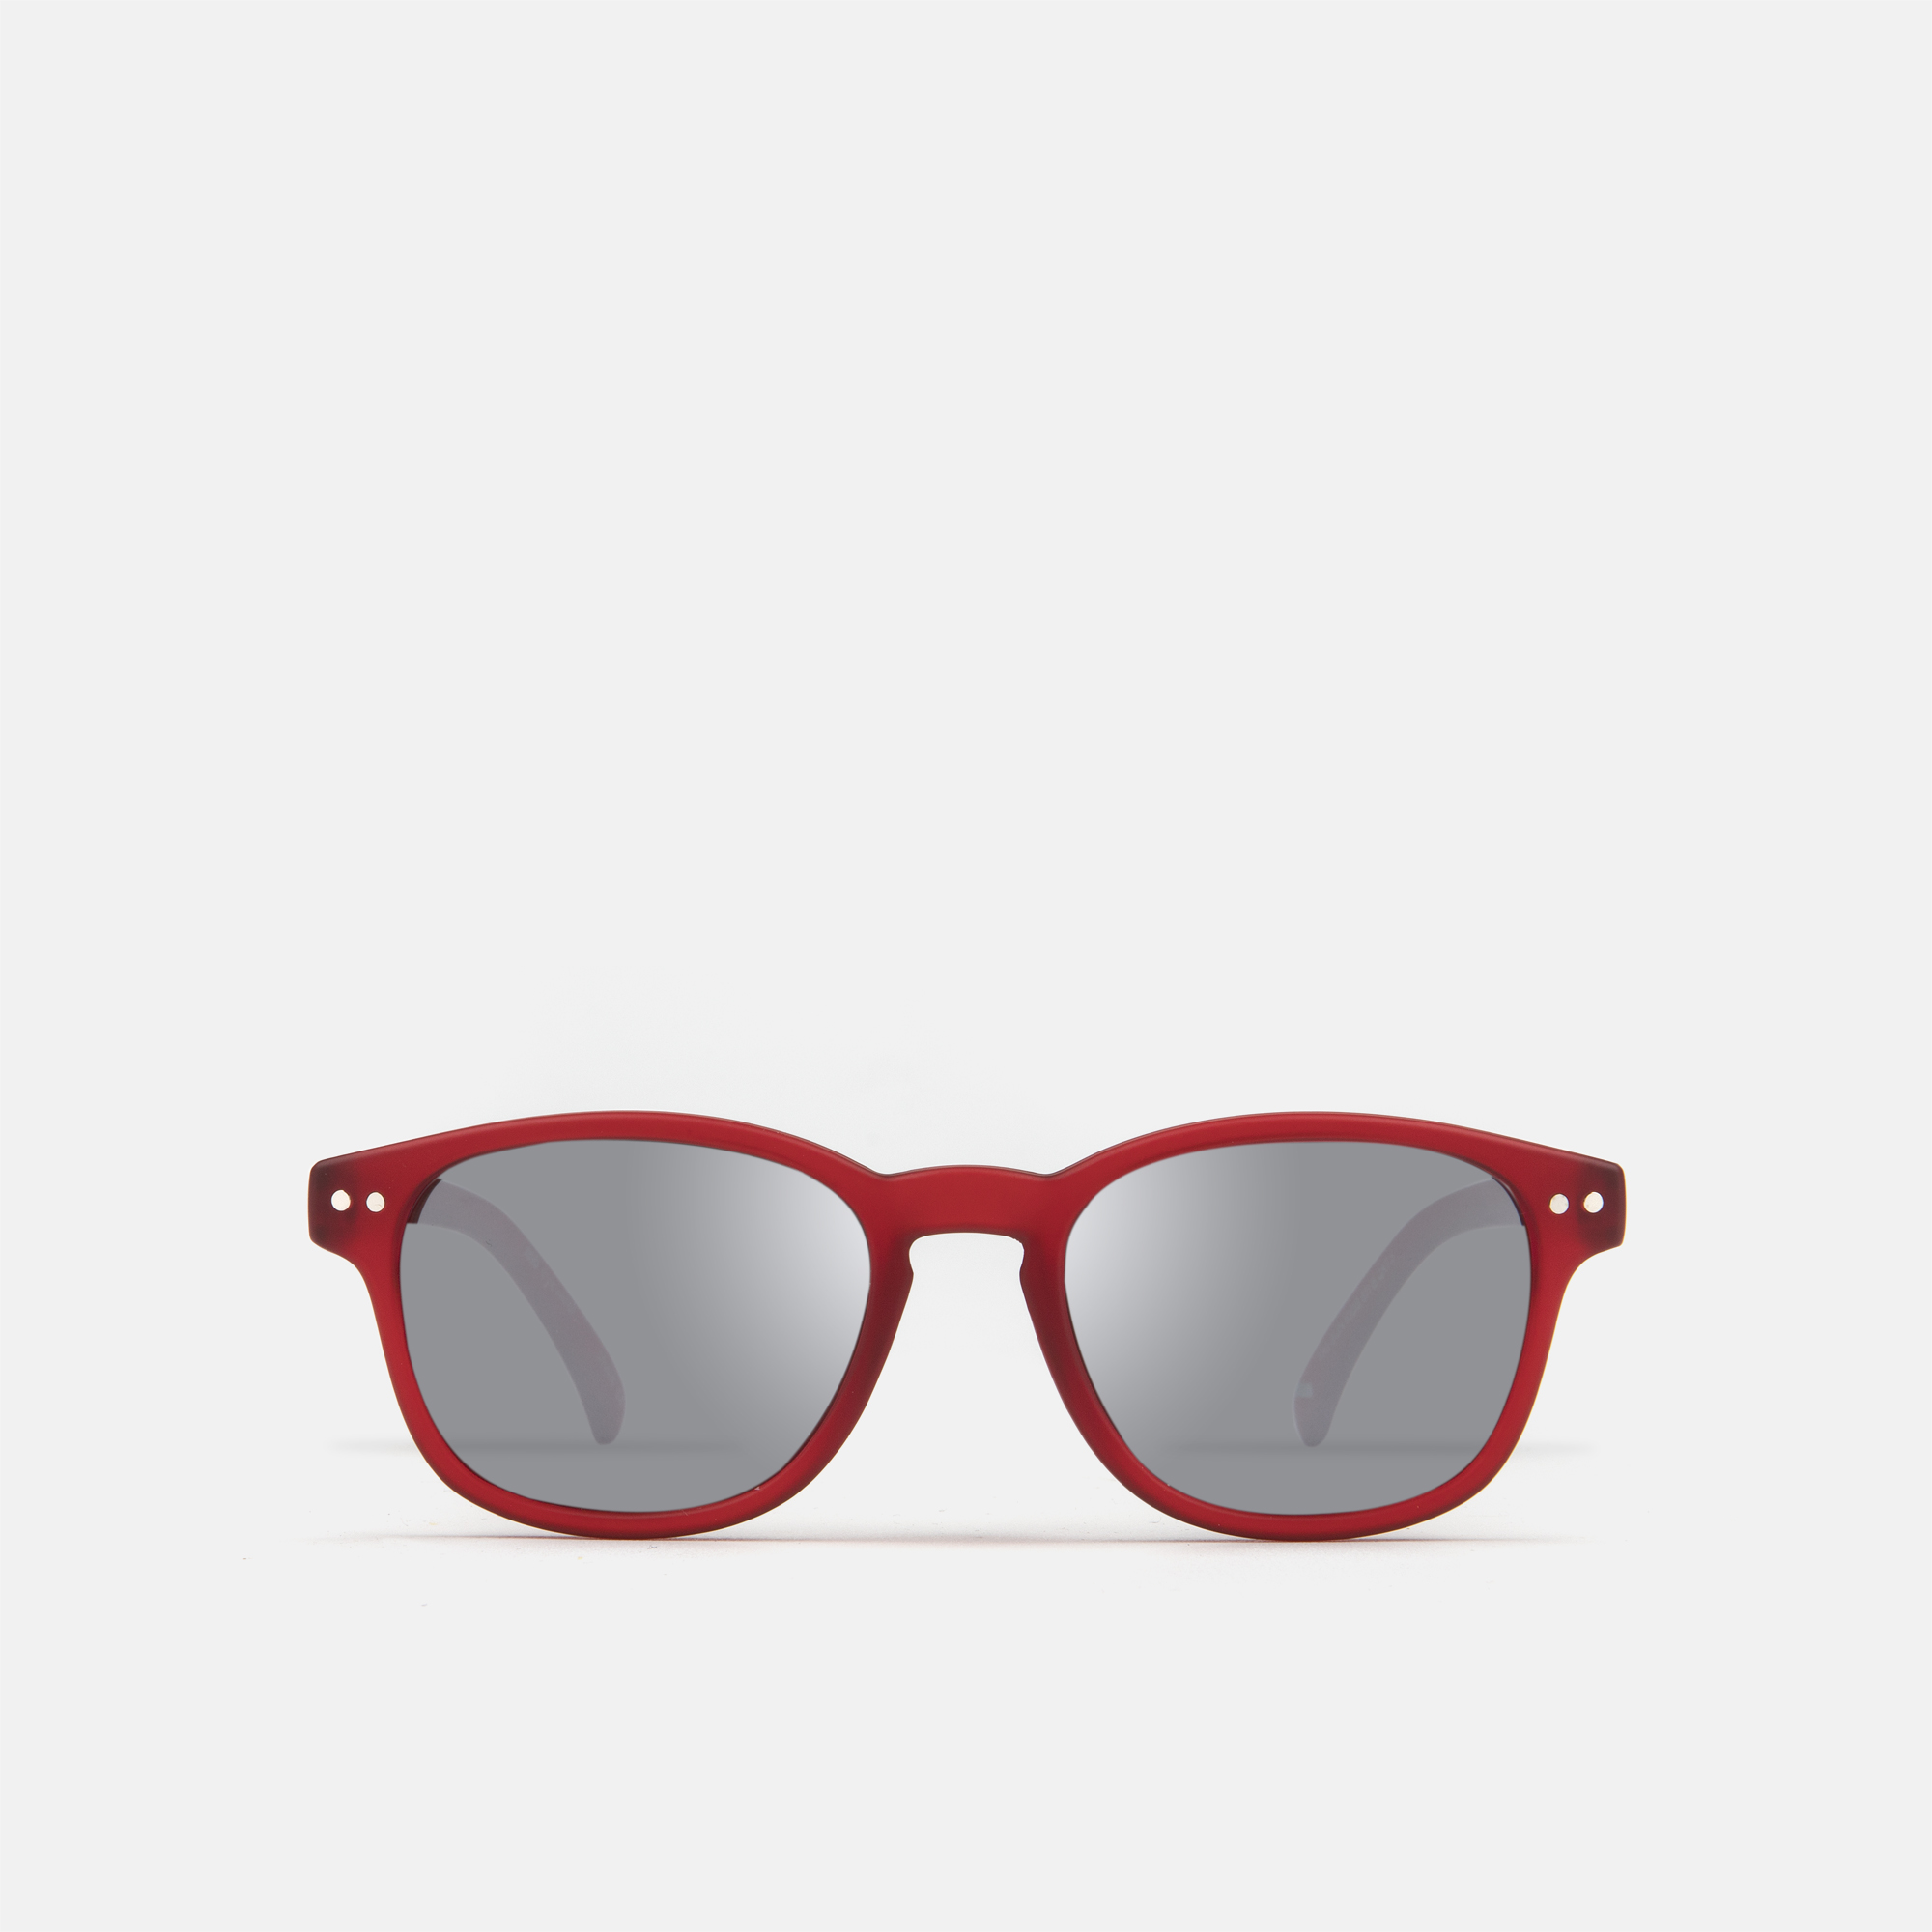 mó sun kids 67I B, red/silver, hi-res